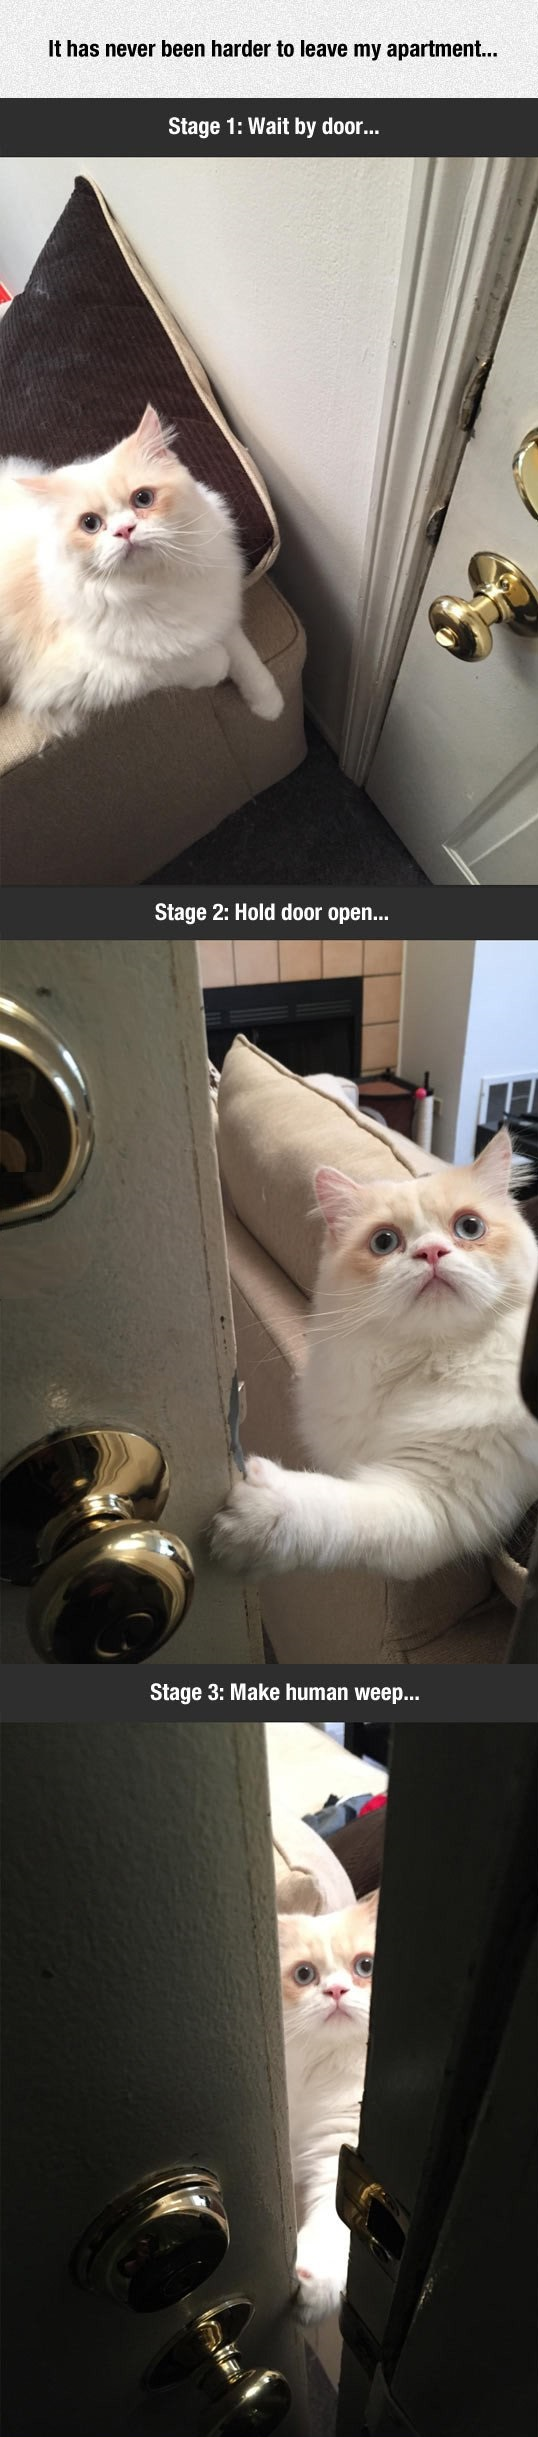 cat-cute-door-leaving